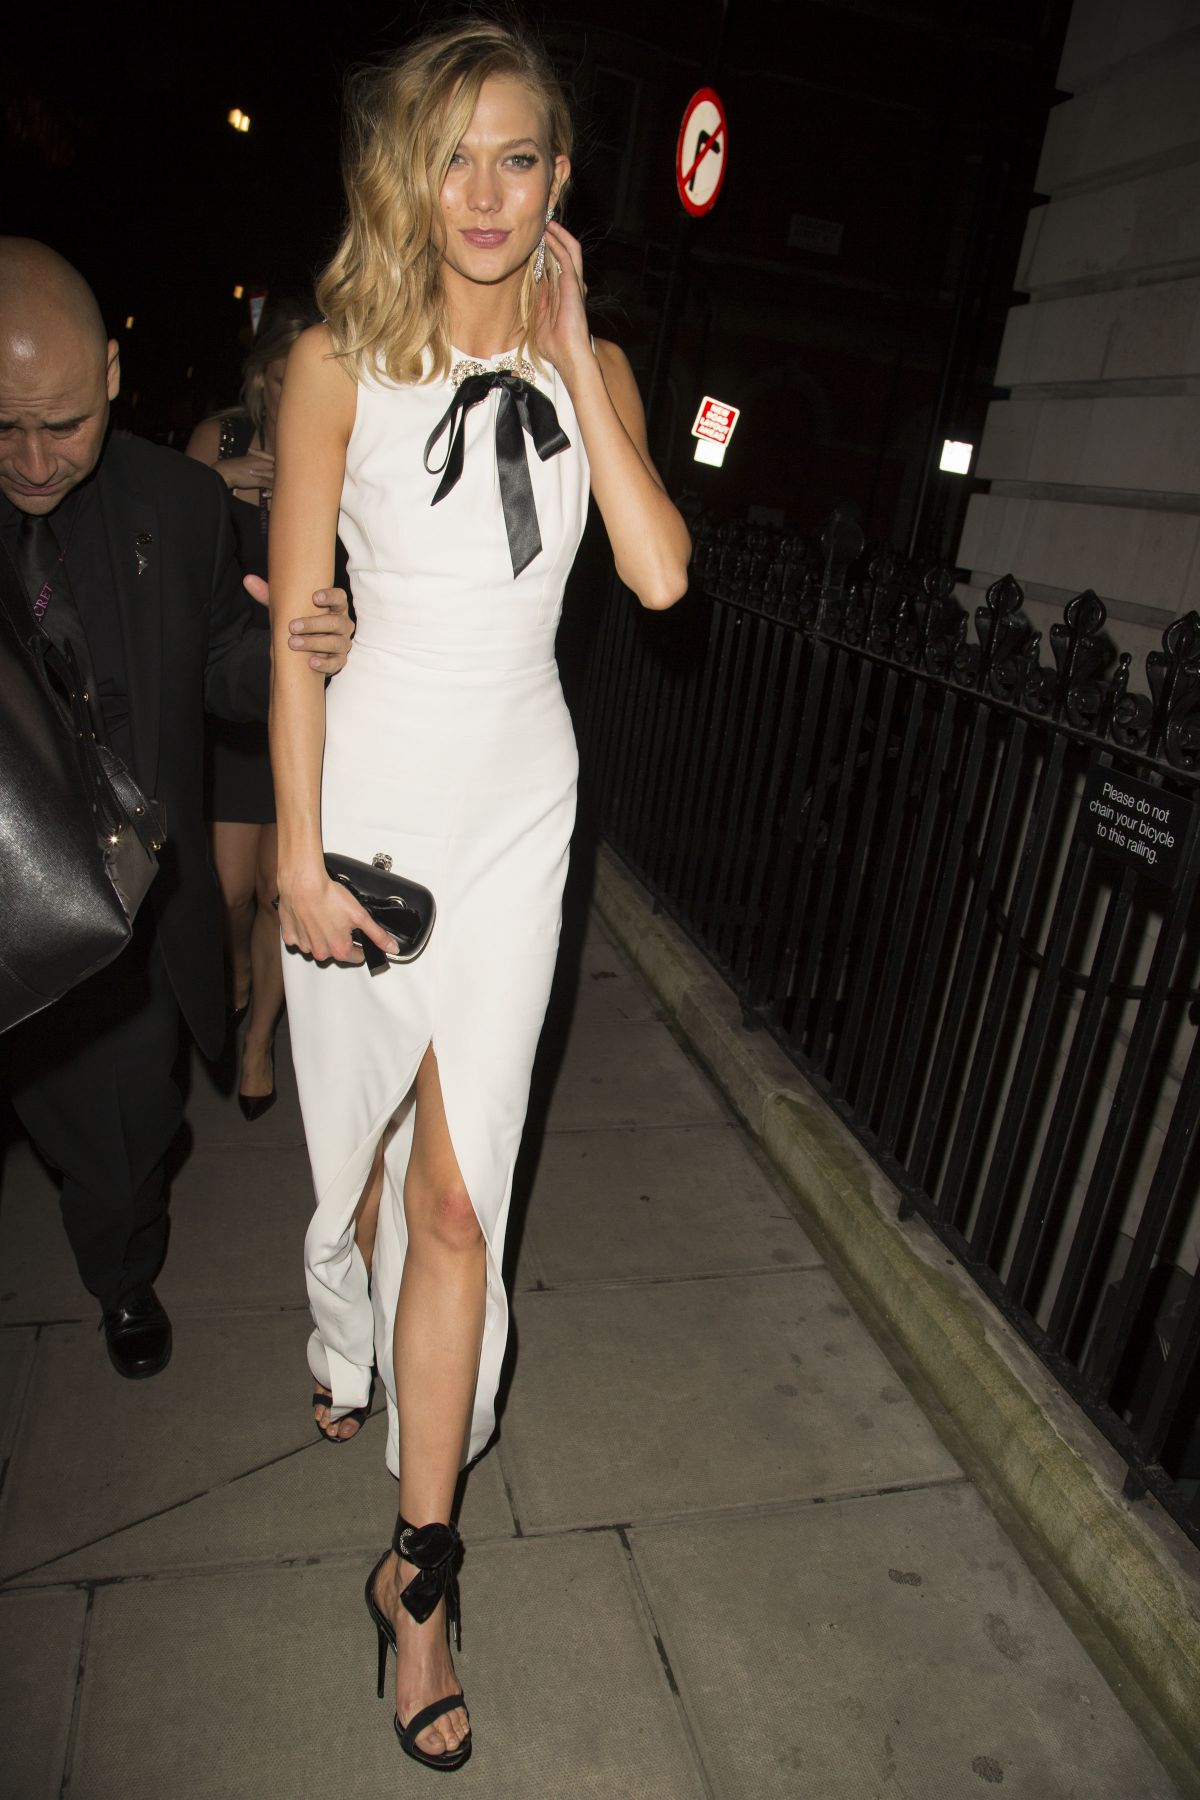 f3948894f5f KARLIE KLOSS at Victoria s Secret Fashion Show Afterparty in London ...